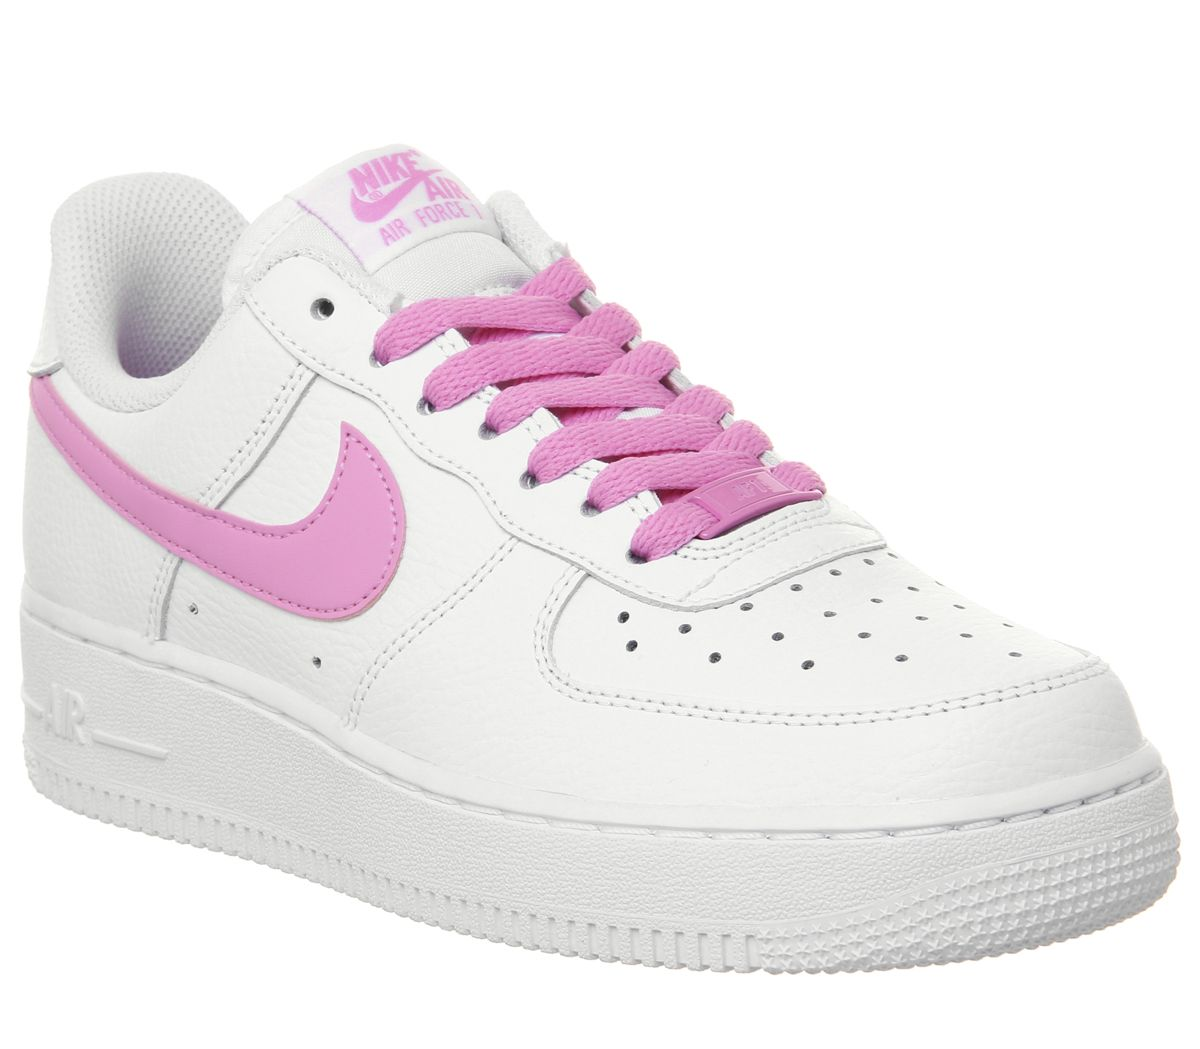 new concept 13bf5 c90da Nike Air Force 1  07 Trainers White Psychic Pink - Hers trainers